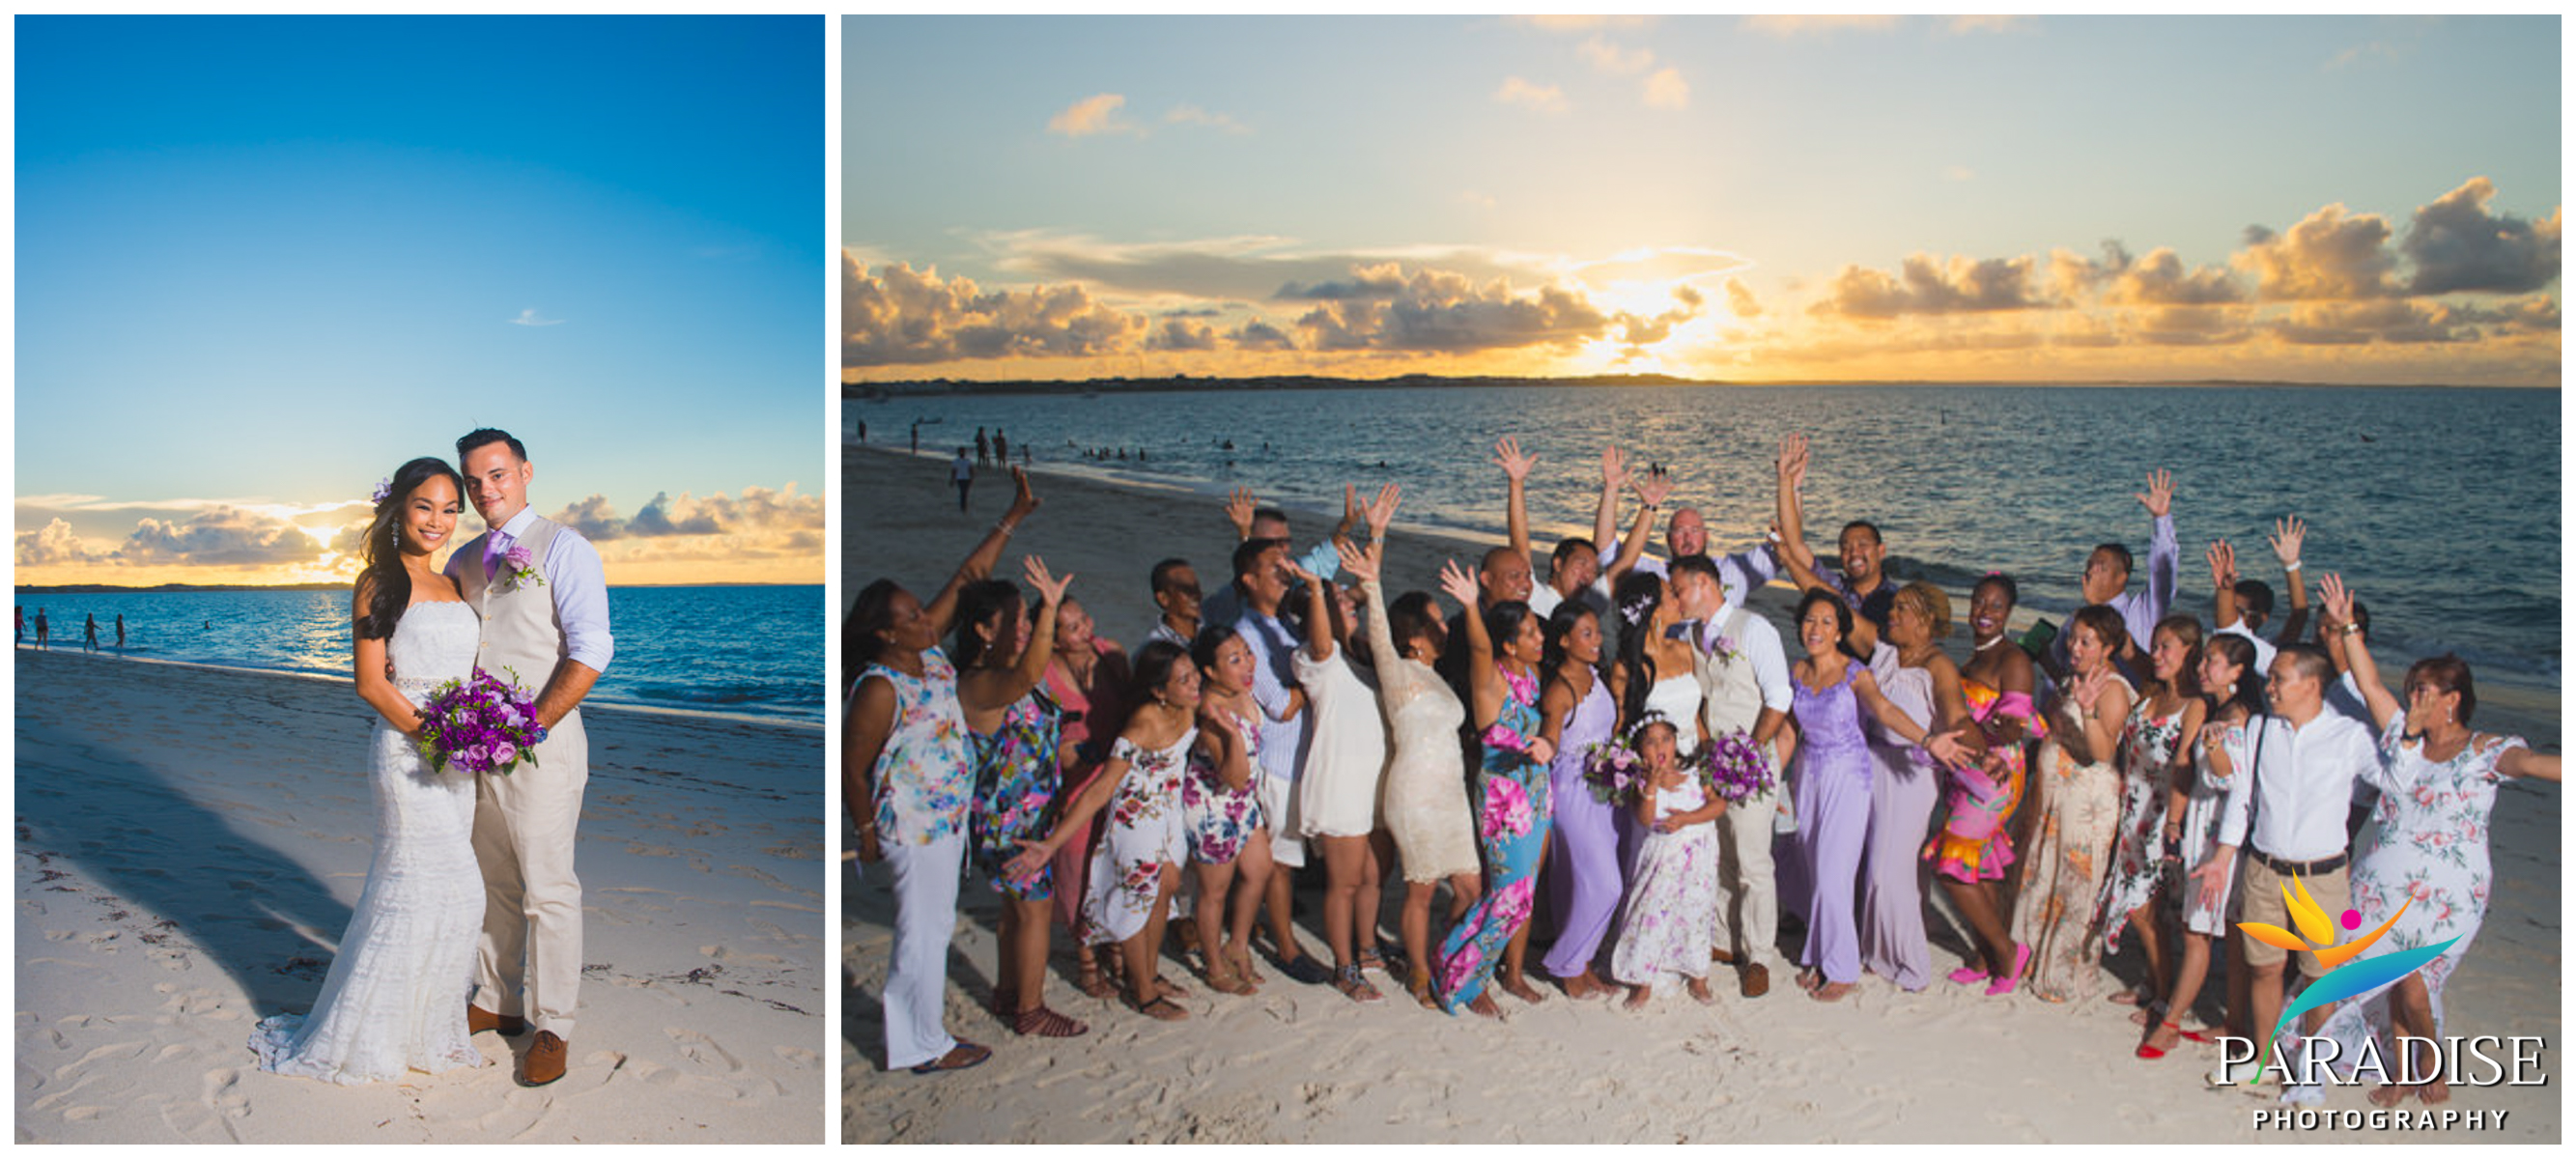 028 destination-wedding-turks-and-caicos-nila-planner-island-caribbean-somerset-bay-bistro-grace-bay-beach